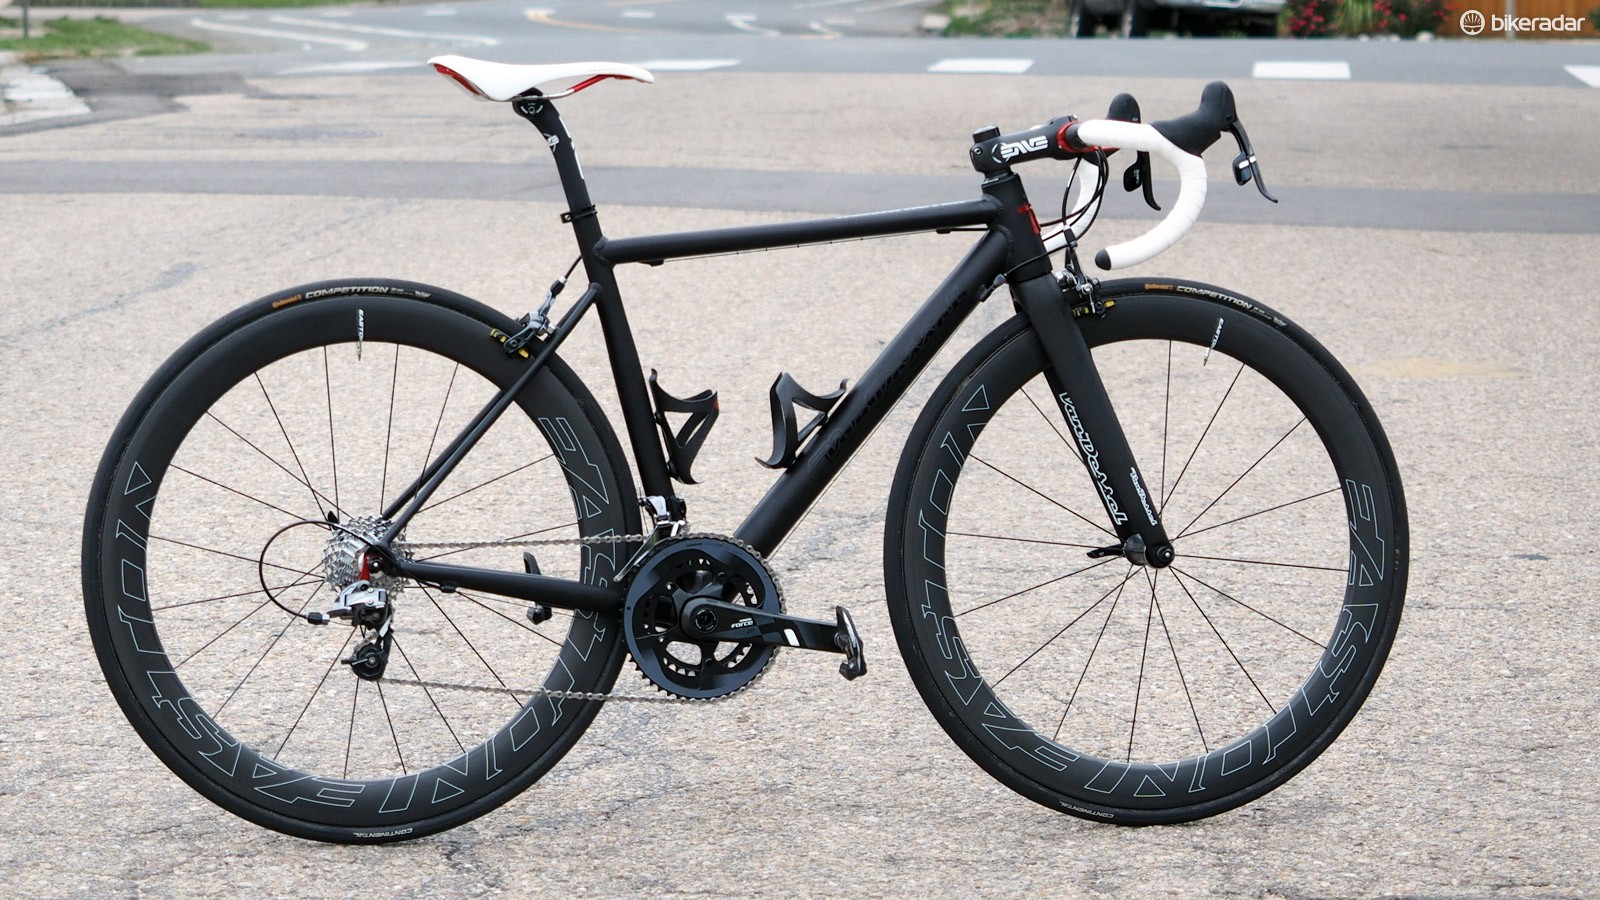 The Van Dessel Hellafaster might have a silly name but it's a good descriptor nonetheless for this metal rocket